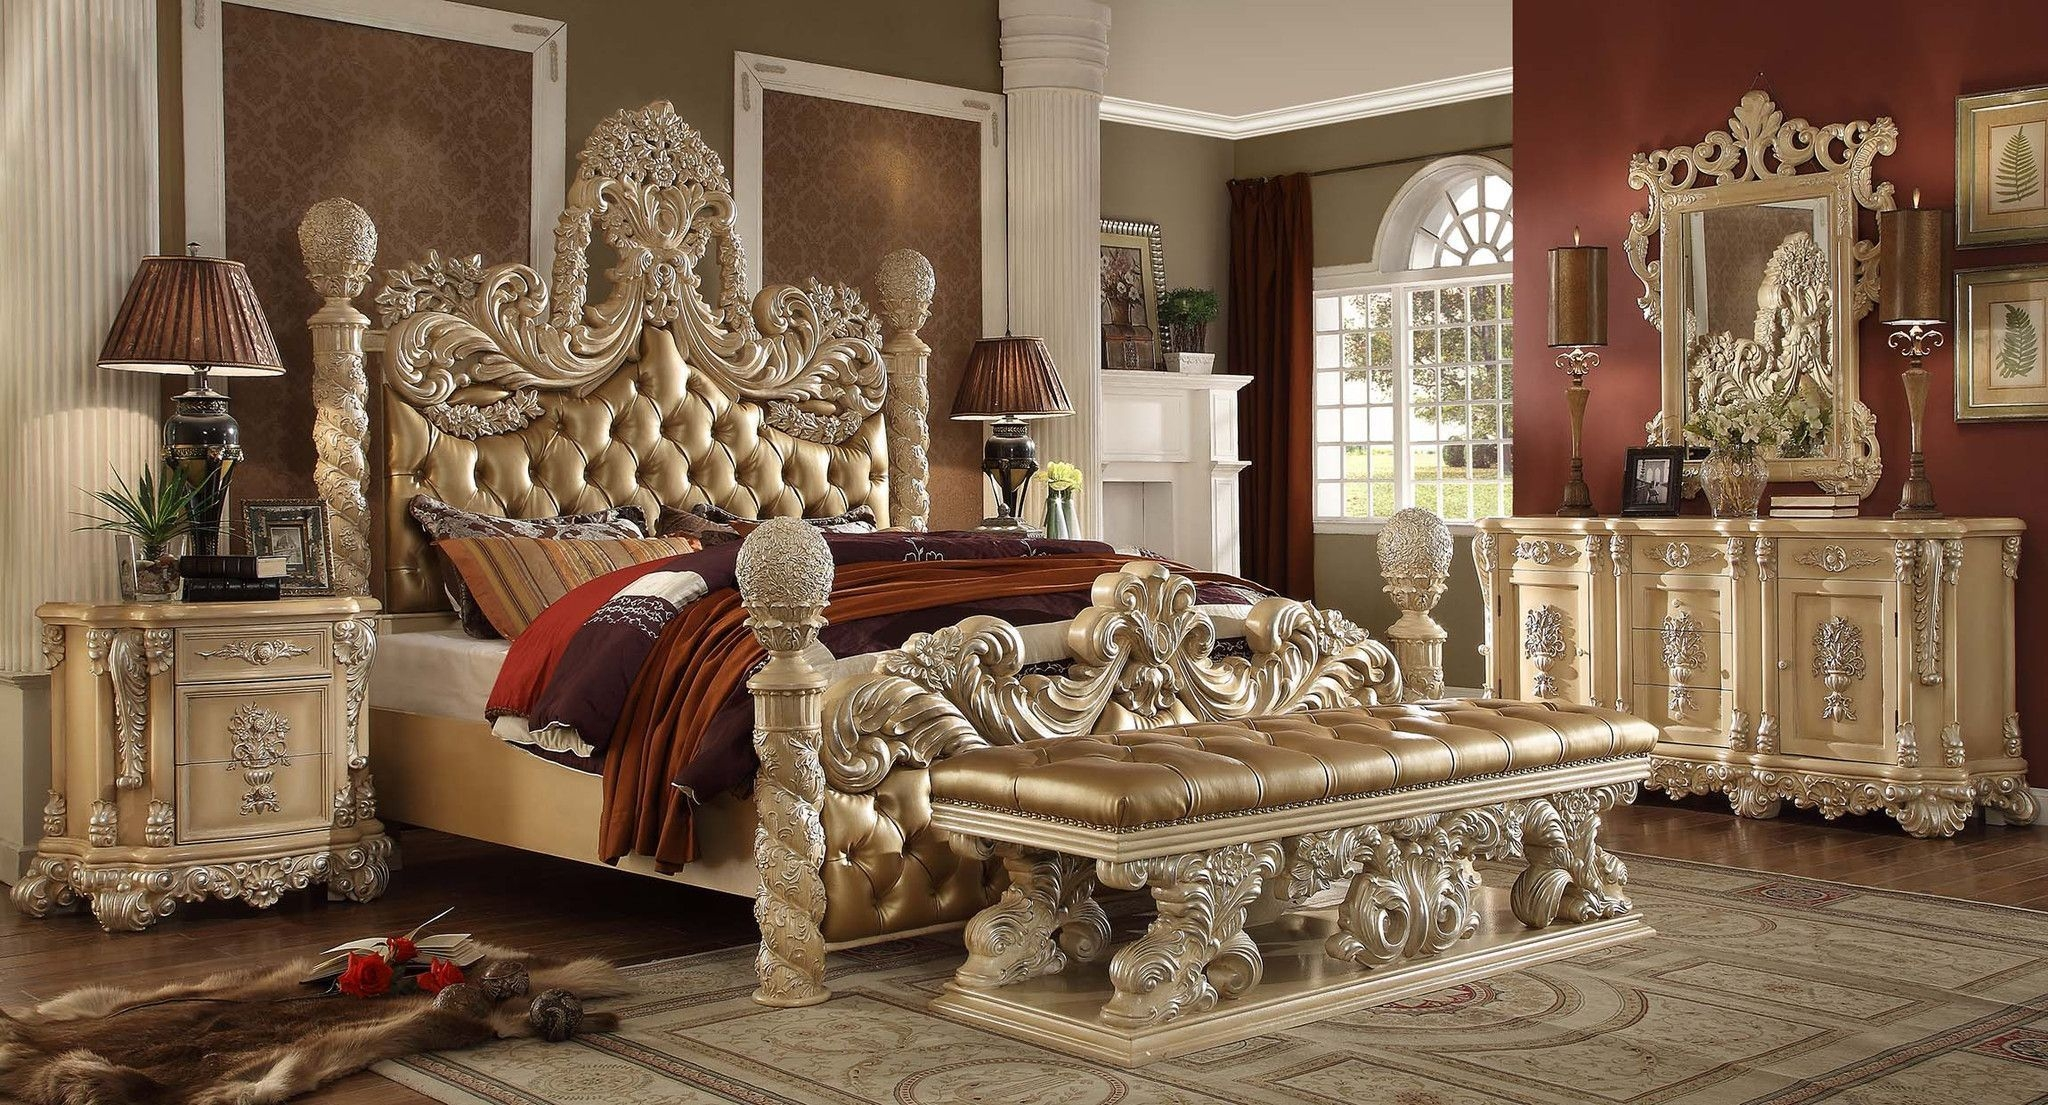 Homey Design Hd7266 Victorian Classic King Bedroom Set  California King Bedroom Sets Luxury